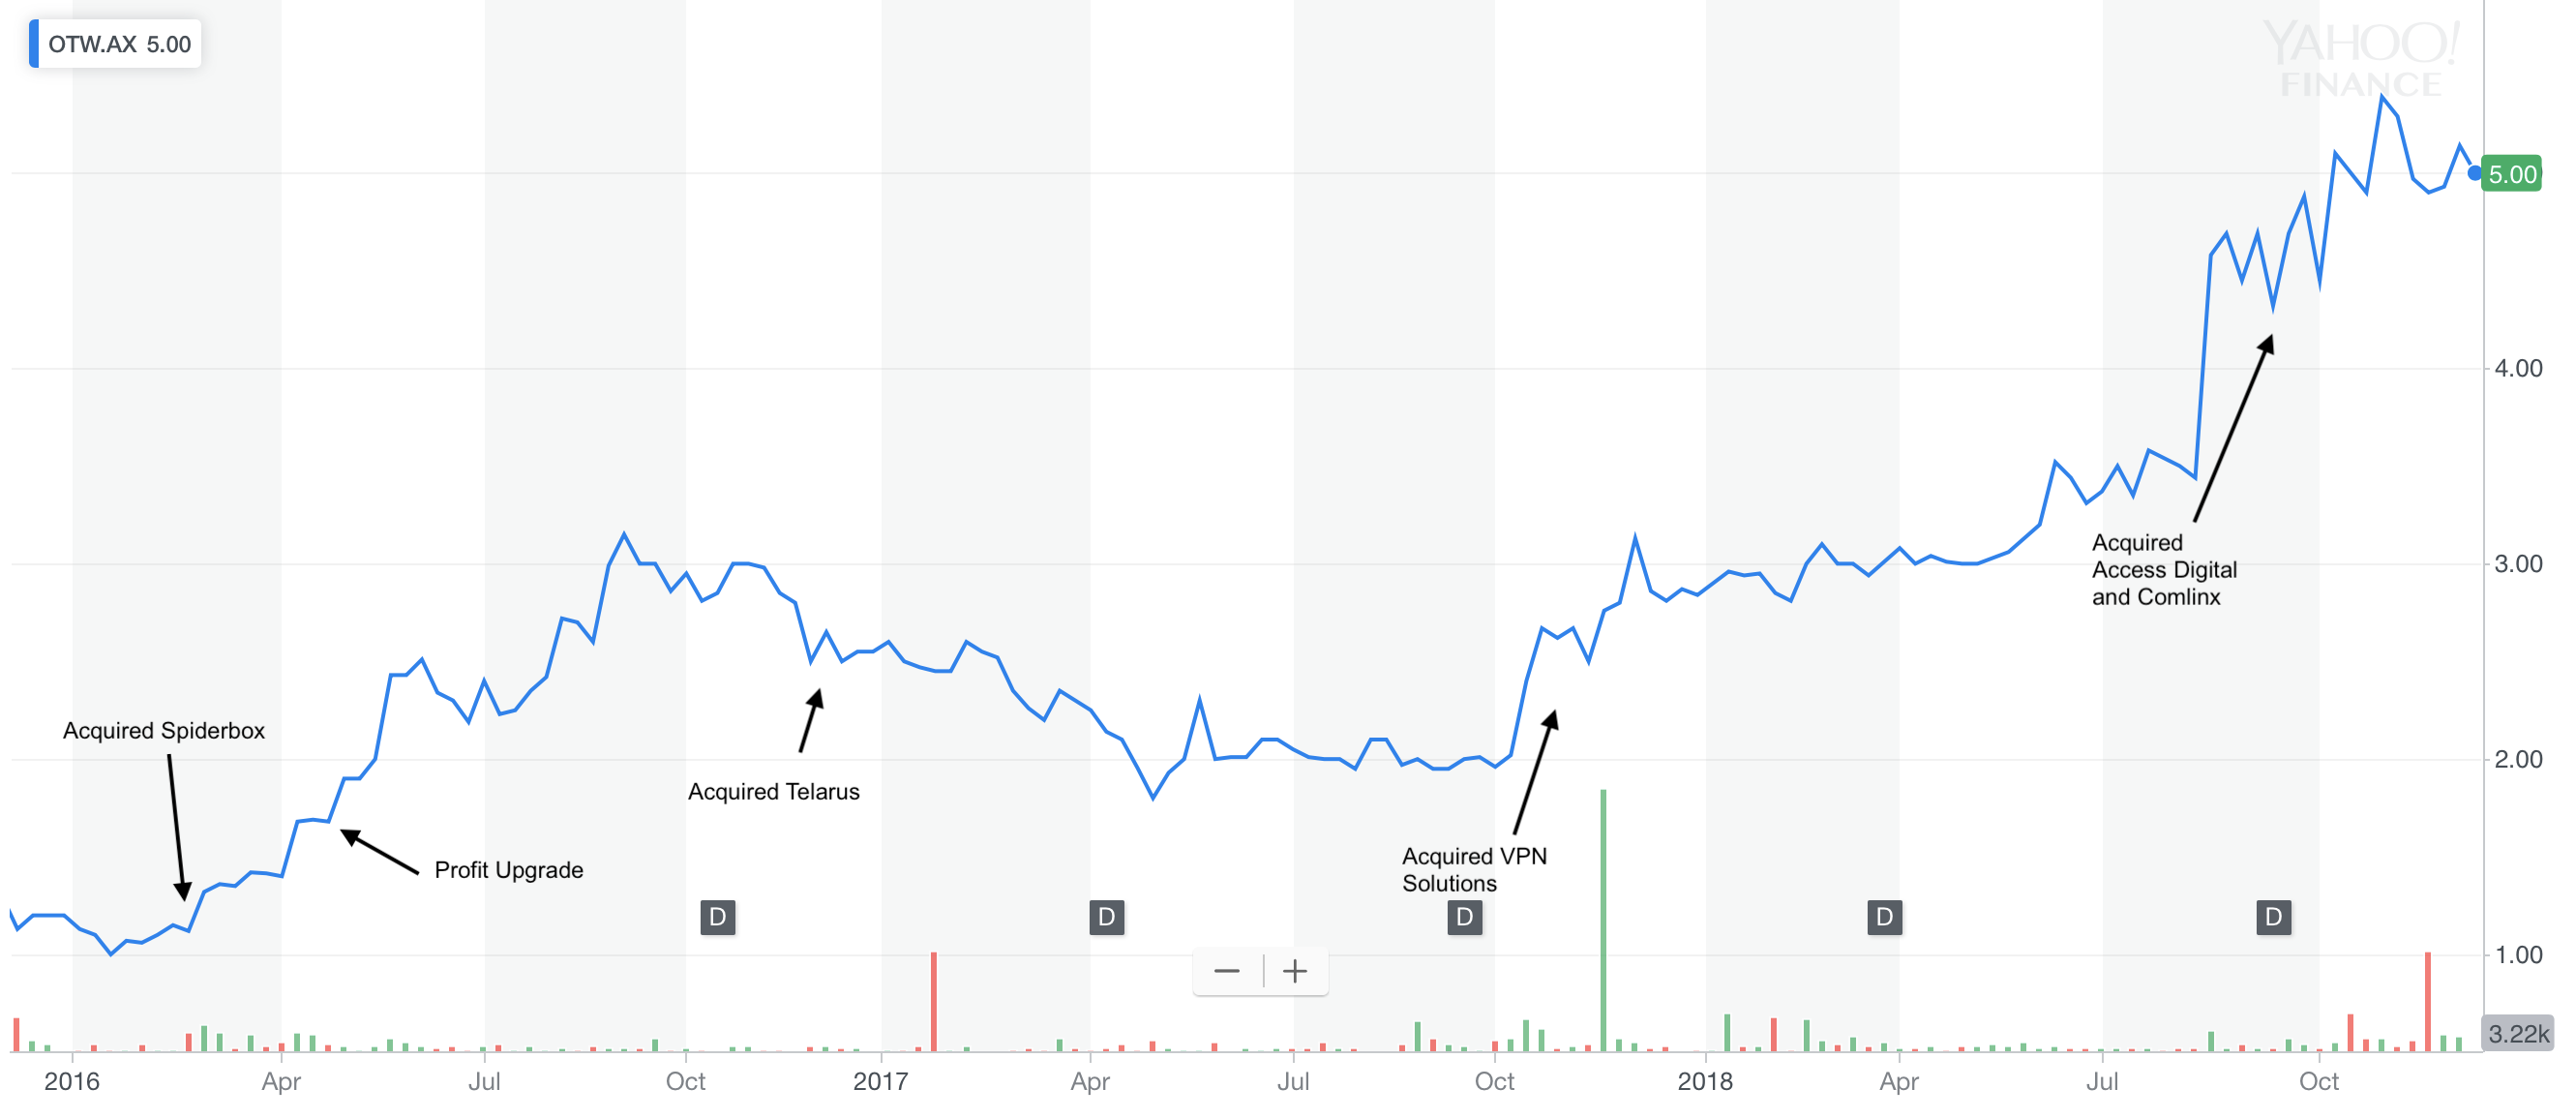 Otw chart and acquisitions